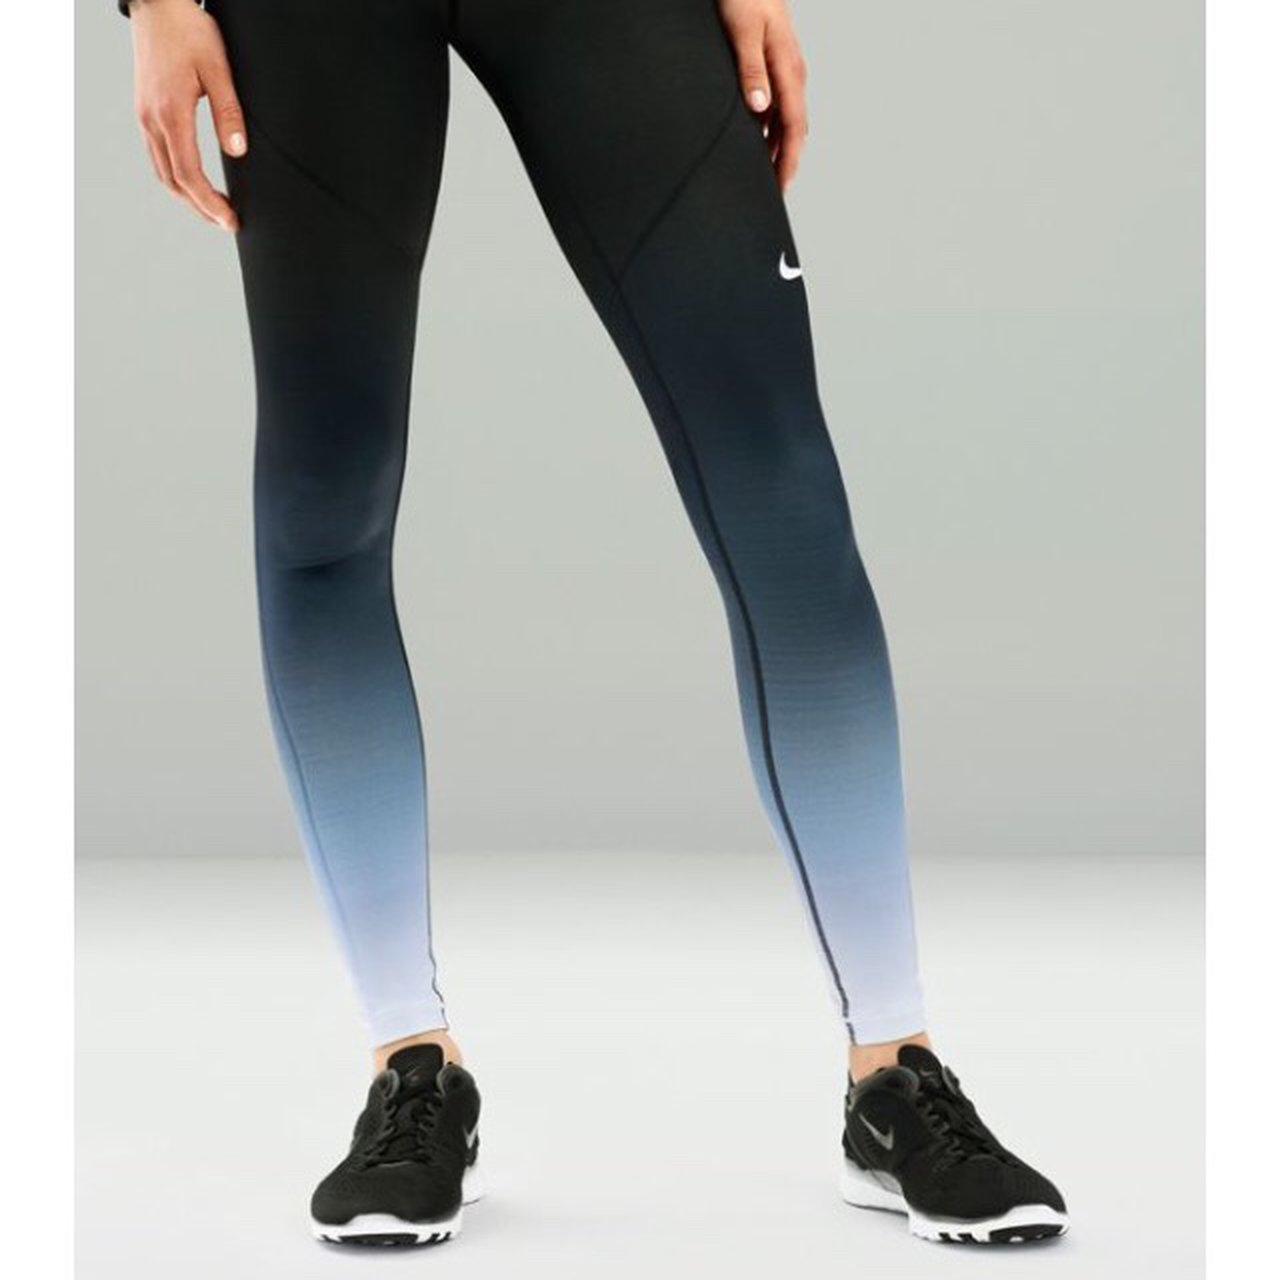 cbf015a2b4967 Really cool blue ombré Nike pro leggings in size XS. Bought - Depop